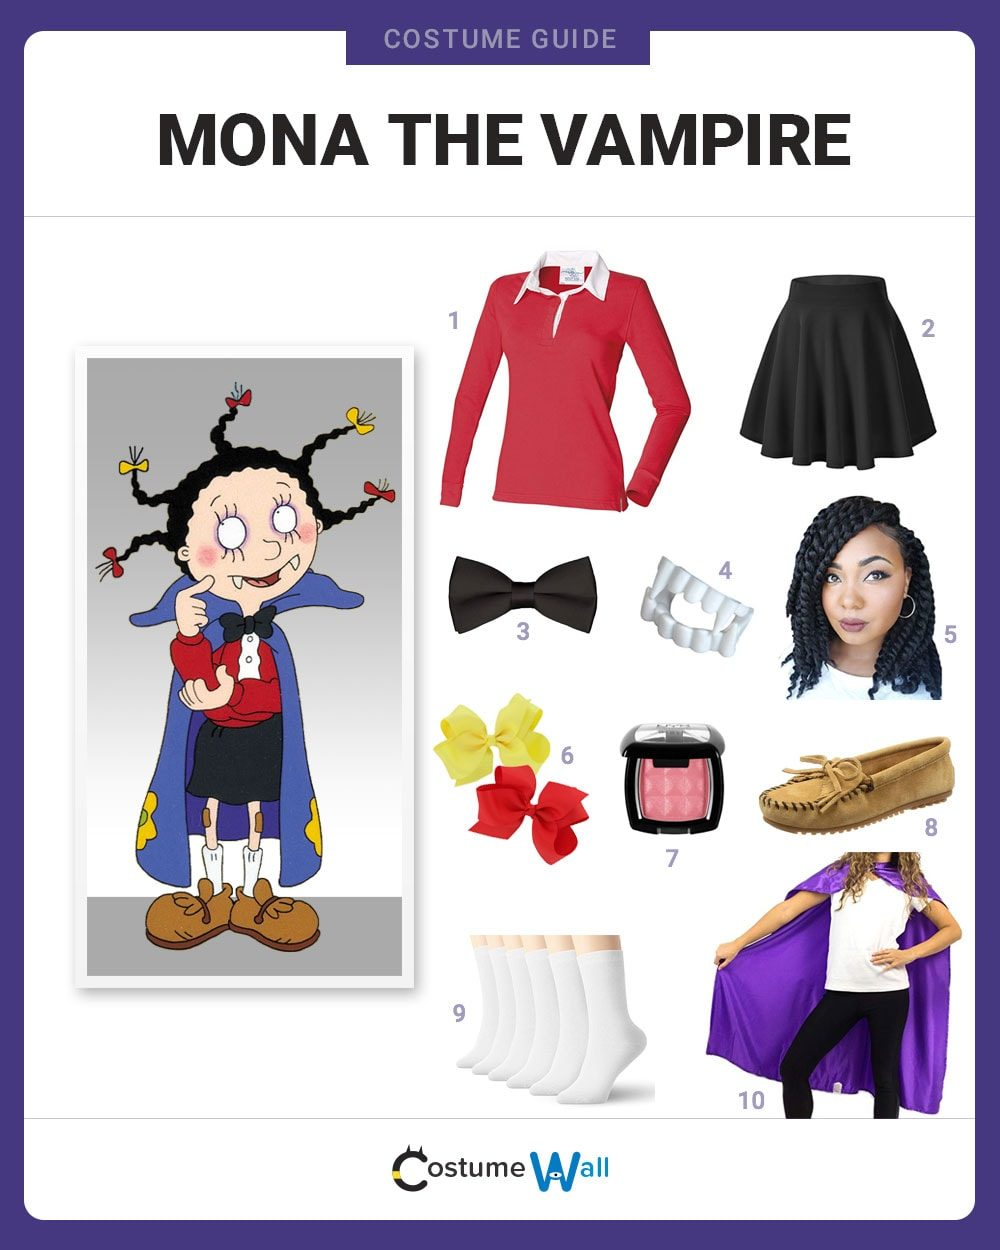 Mona the Vampire Costume Guide